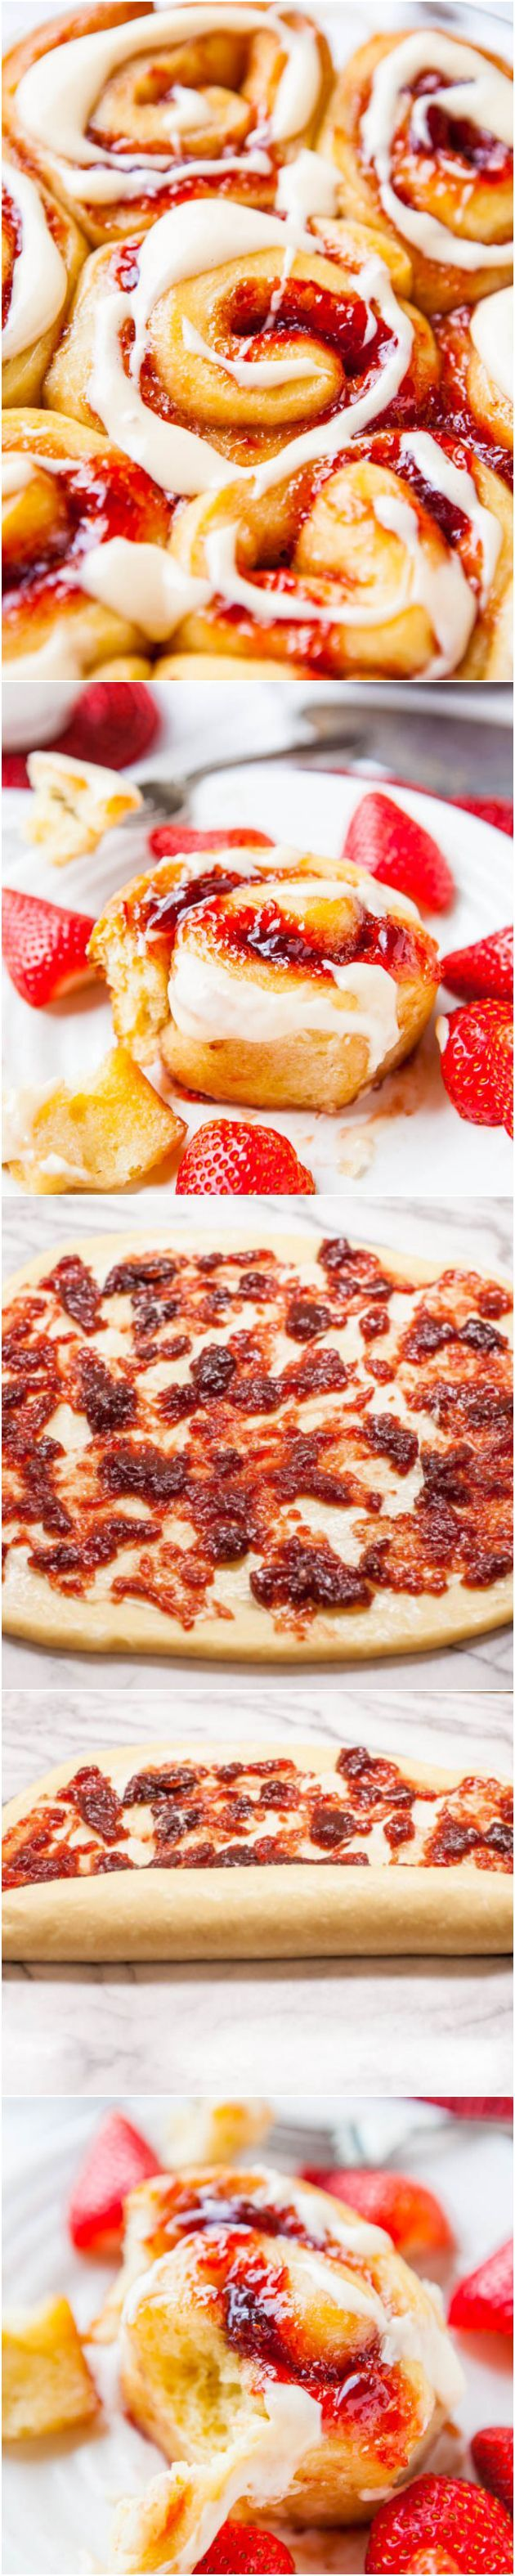 Strawberry Sweet Rolls with Vanilla Cream Cheese Glaze - Soft, buttery rolls loaded with sweet strawberry jam are an automatic hit! There's an overnight/make-ahead option so you can pop them into the oven whenever you're ready! Easy recipe at averiecooks.com